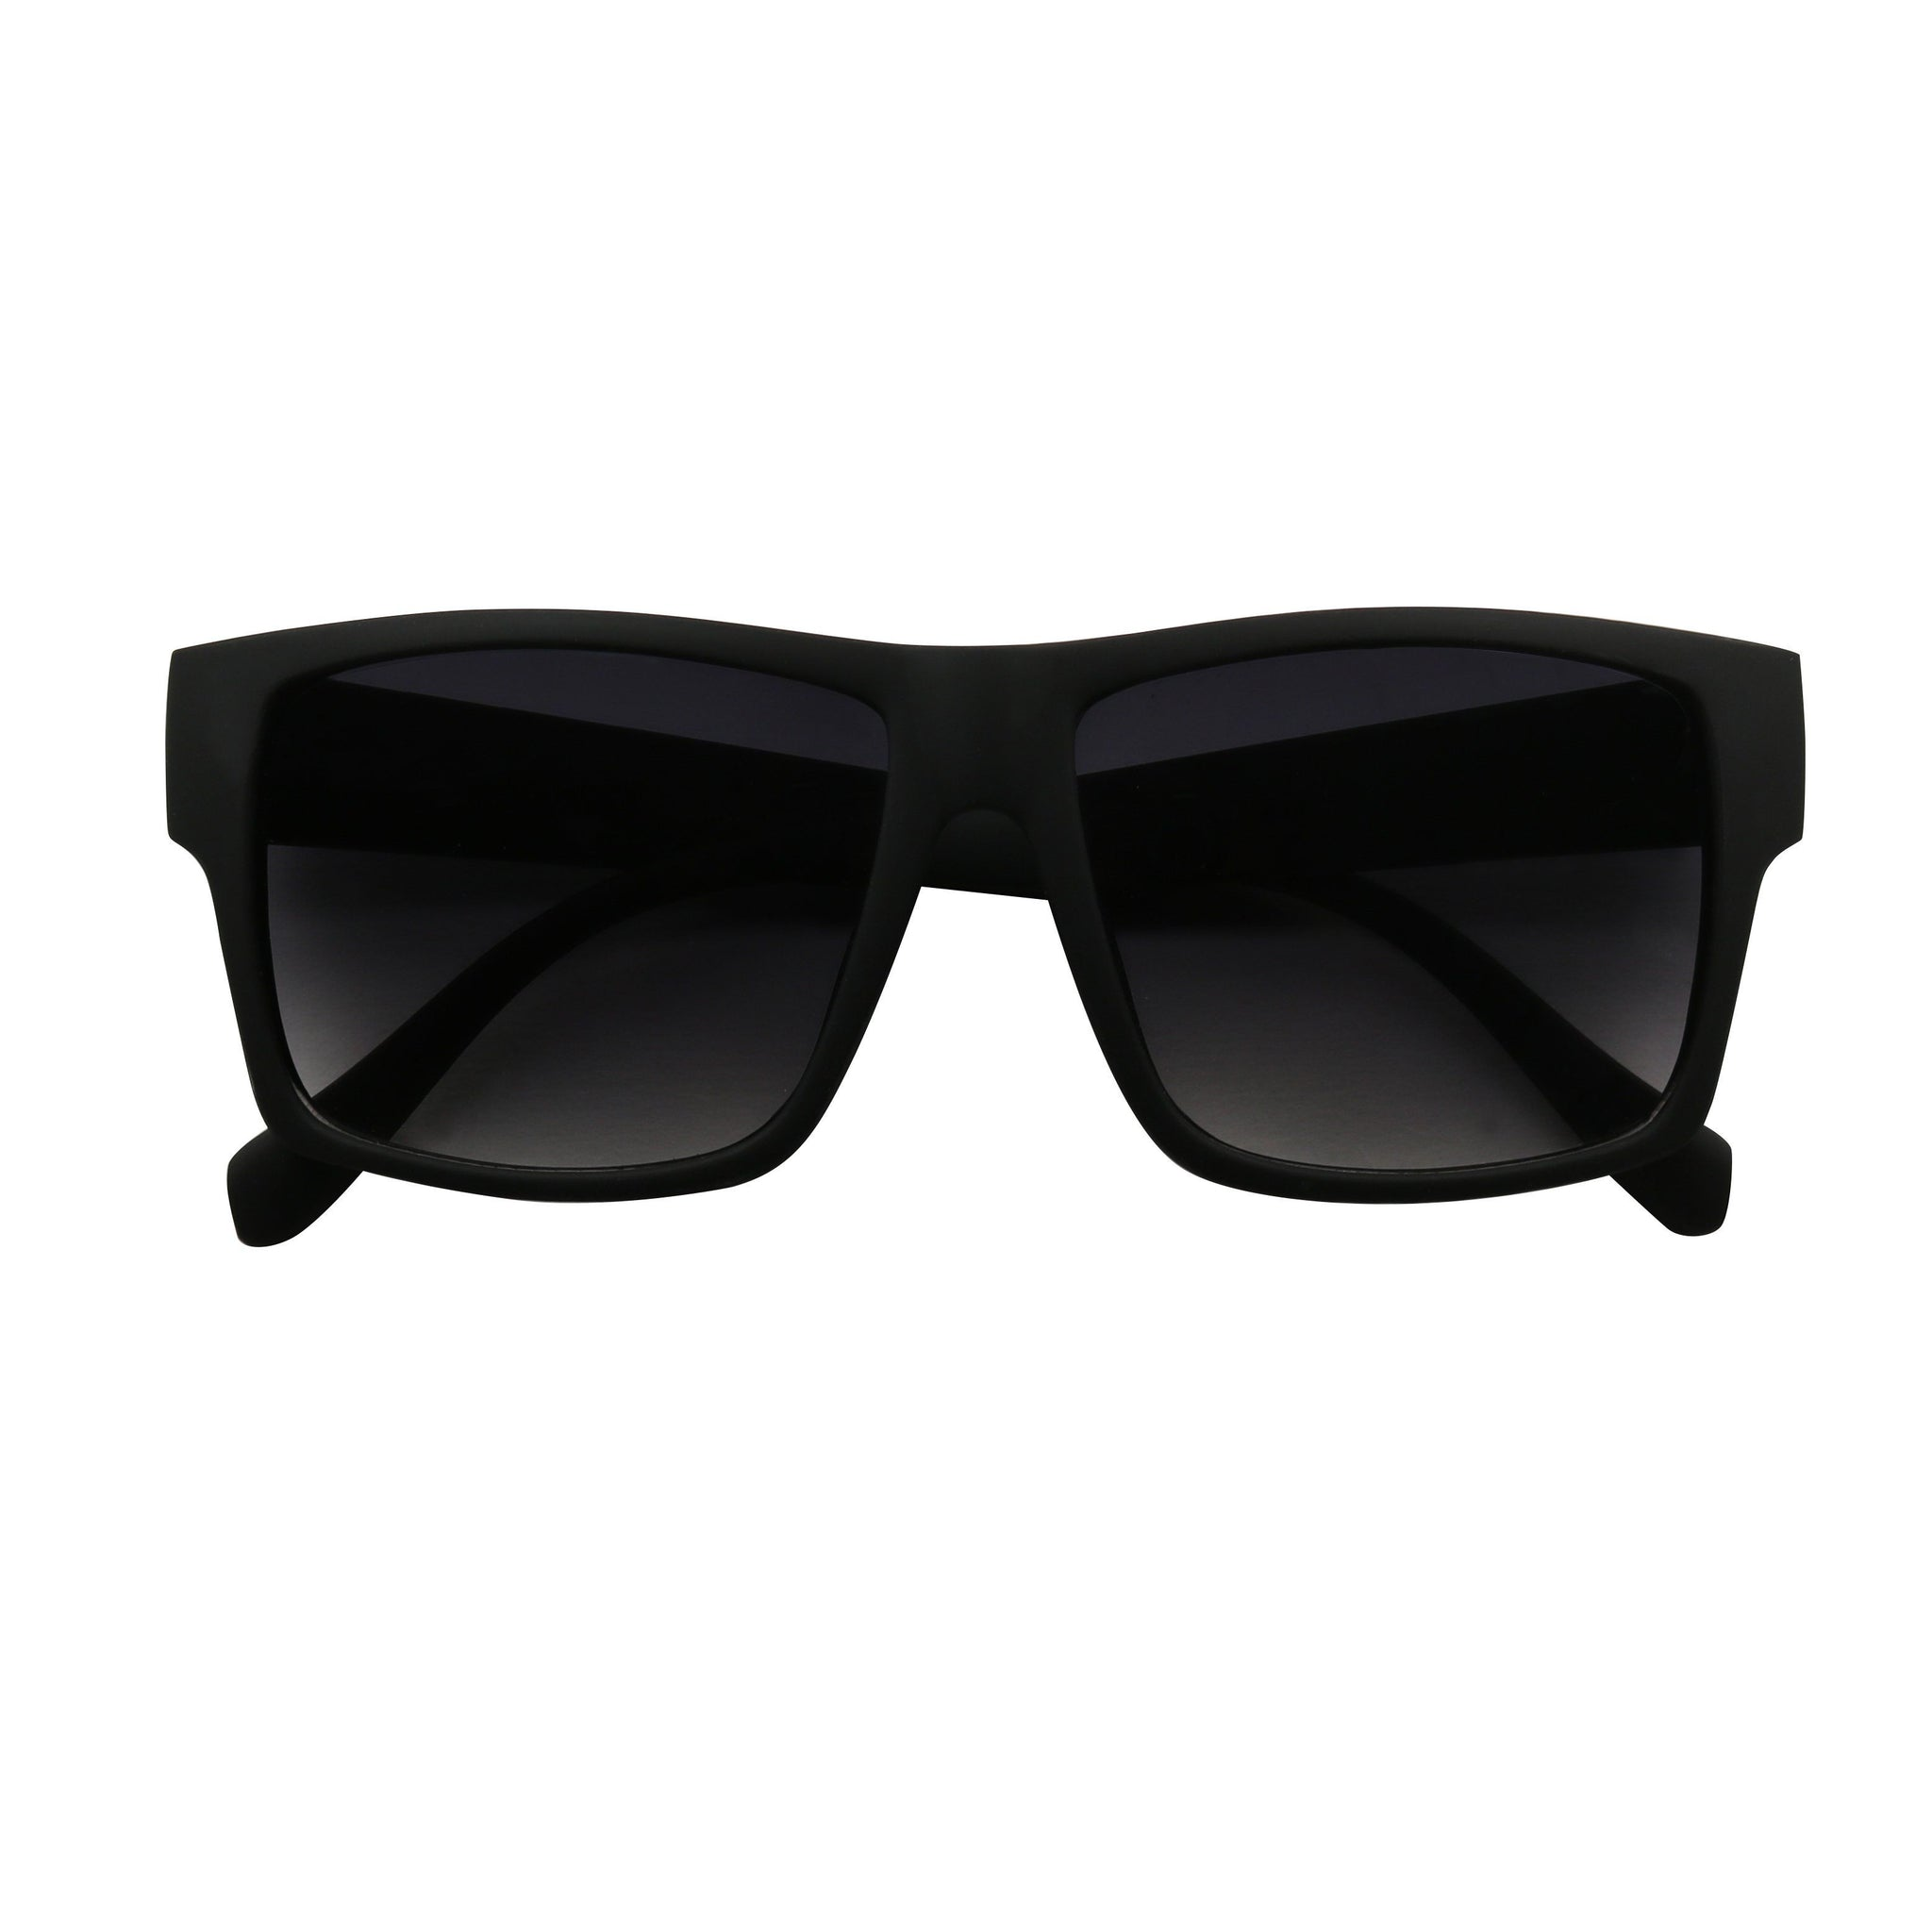 GUY Casual Matte Frame with Gradient Lens - ShadyVEU